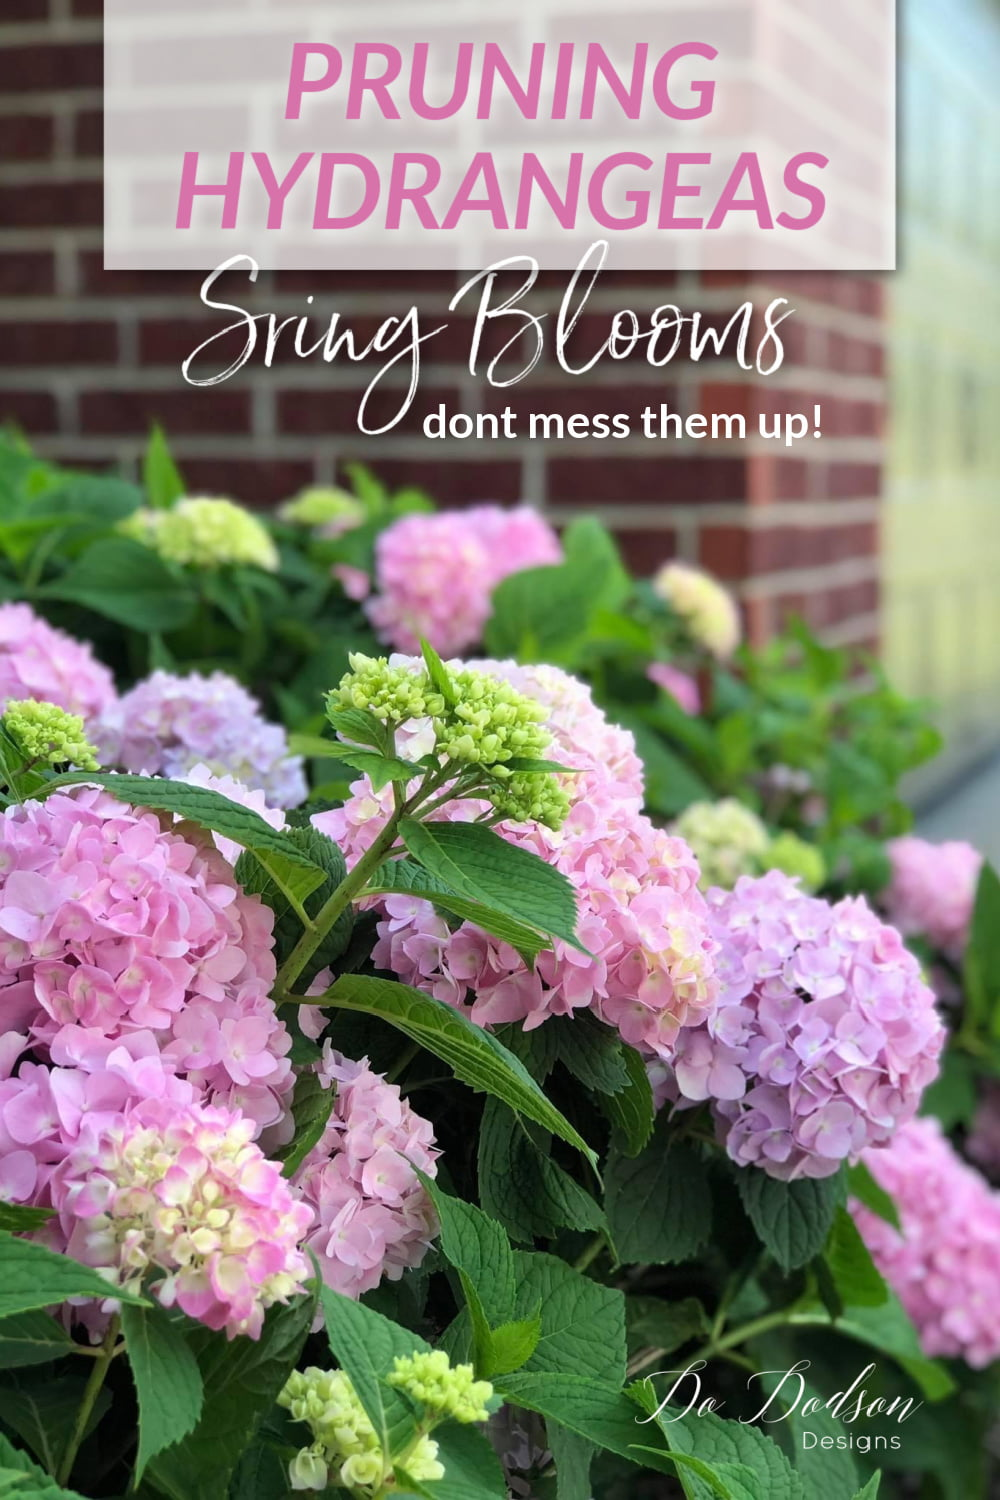 Pruning Hydrangeas Before Spring Blooms - Don\'t Mess Them Up!